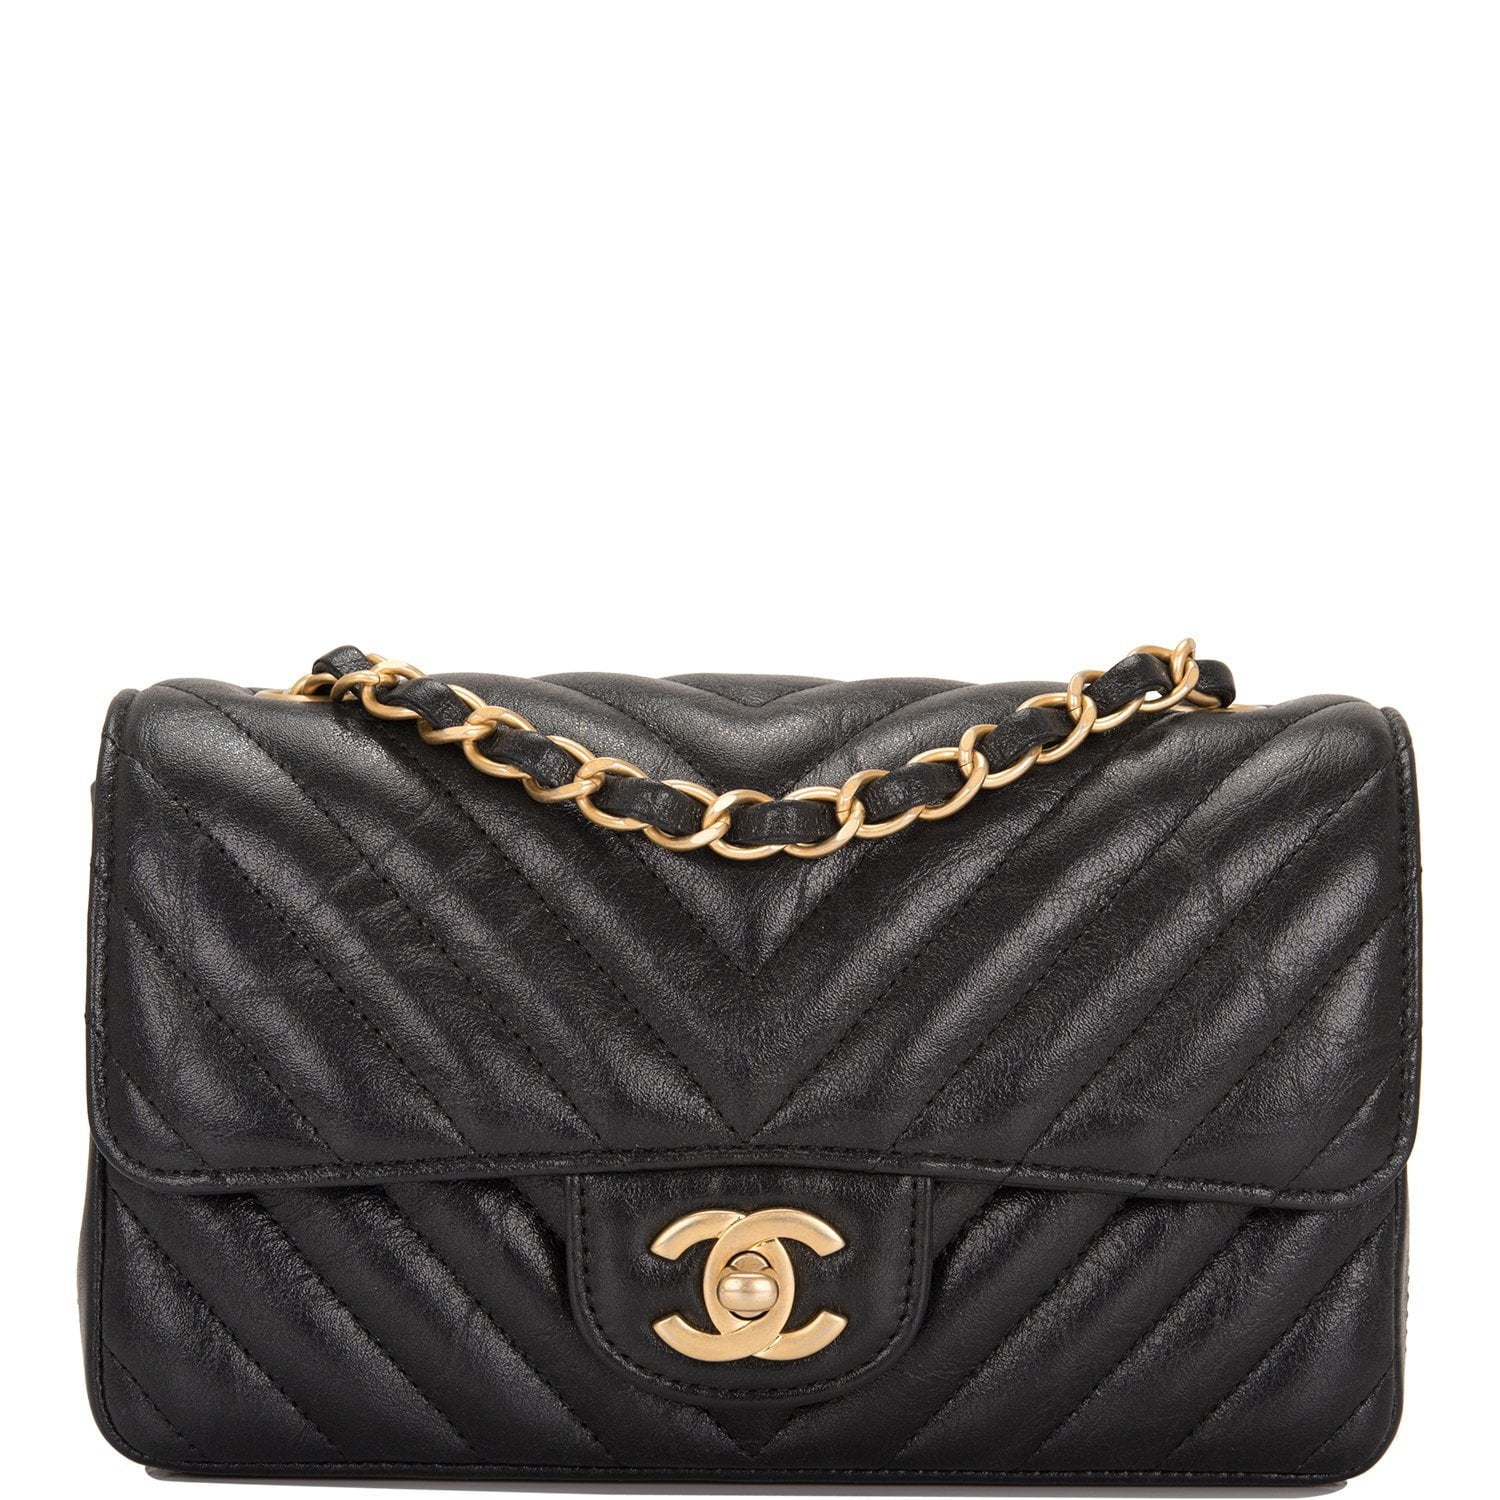 Chanel Black Chevron Metallic Etched Calfskin Rectangular Mini Classic Flap  Bag d9ef842da230b